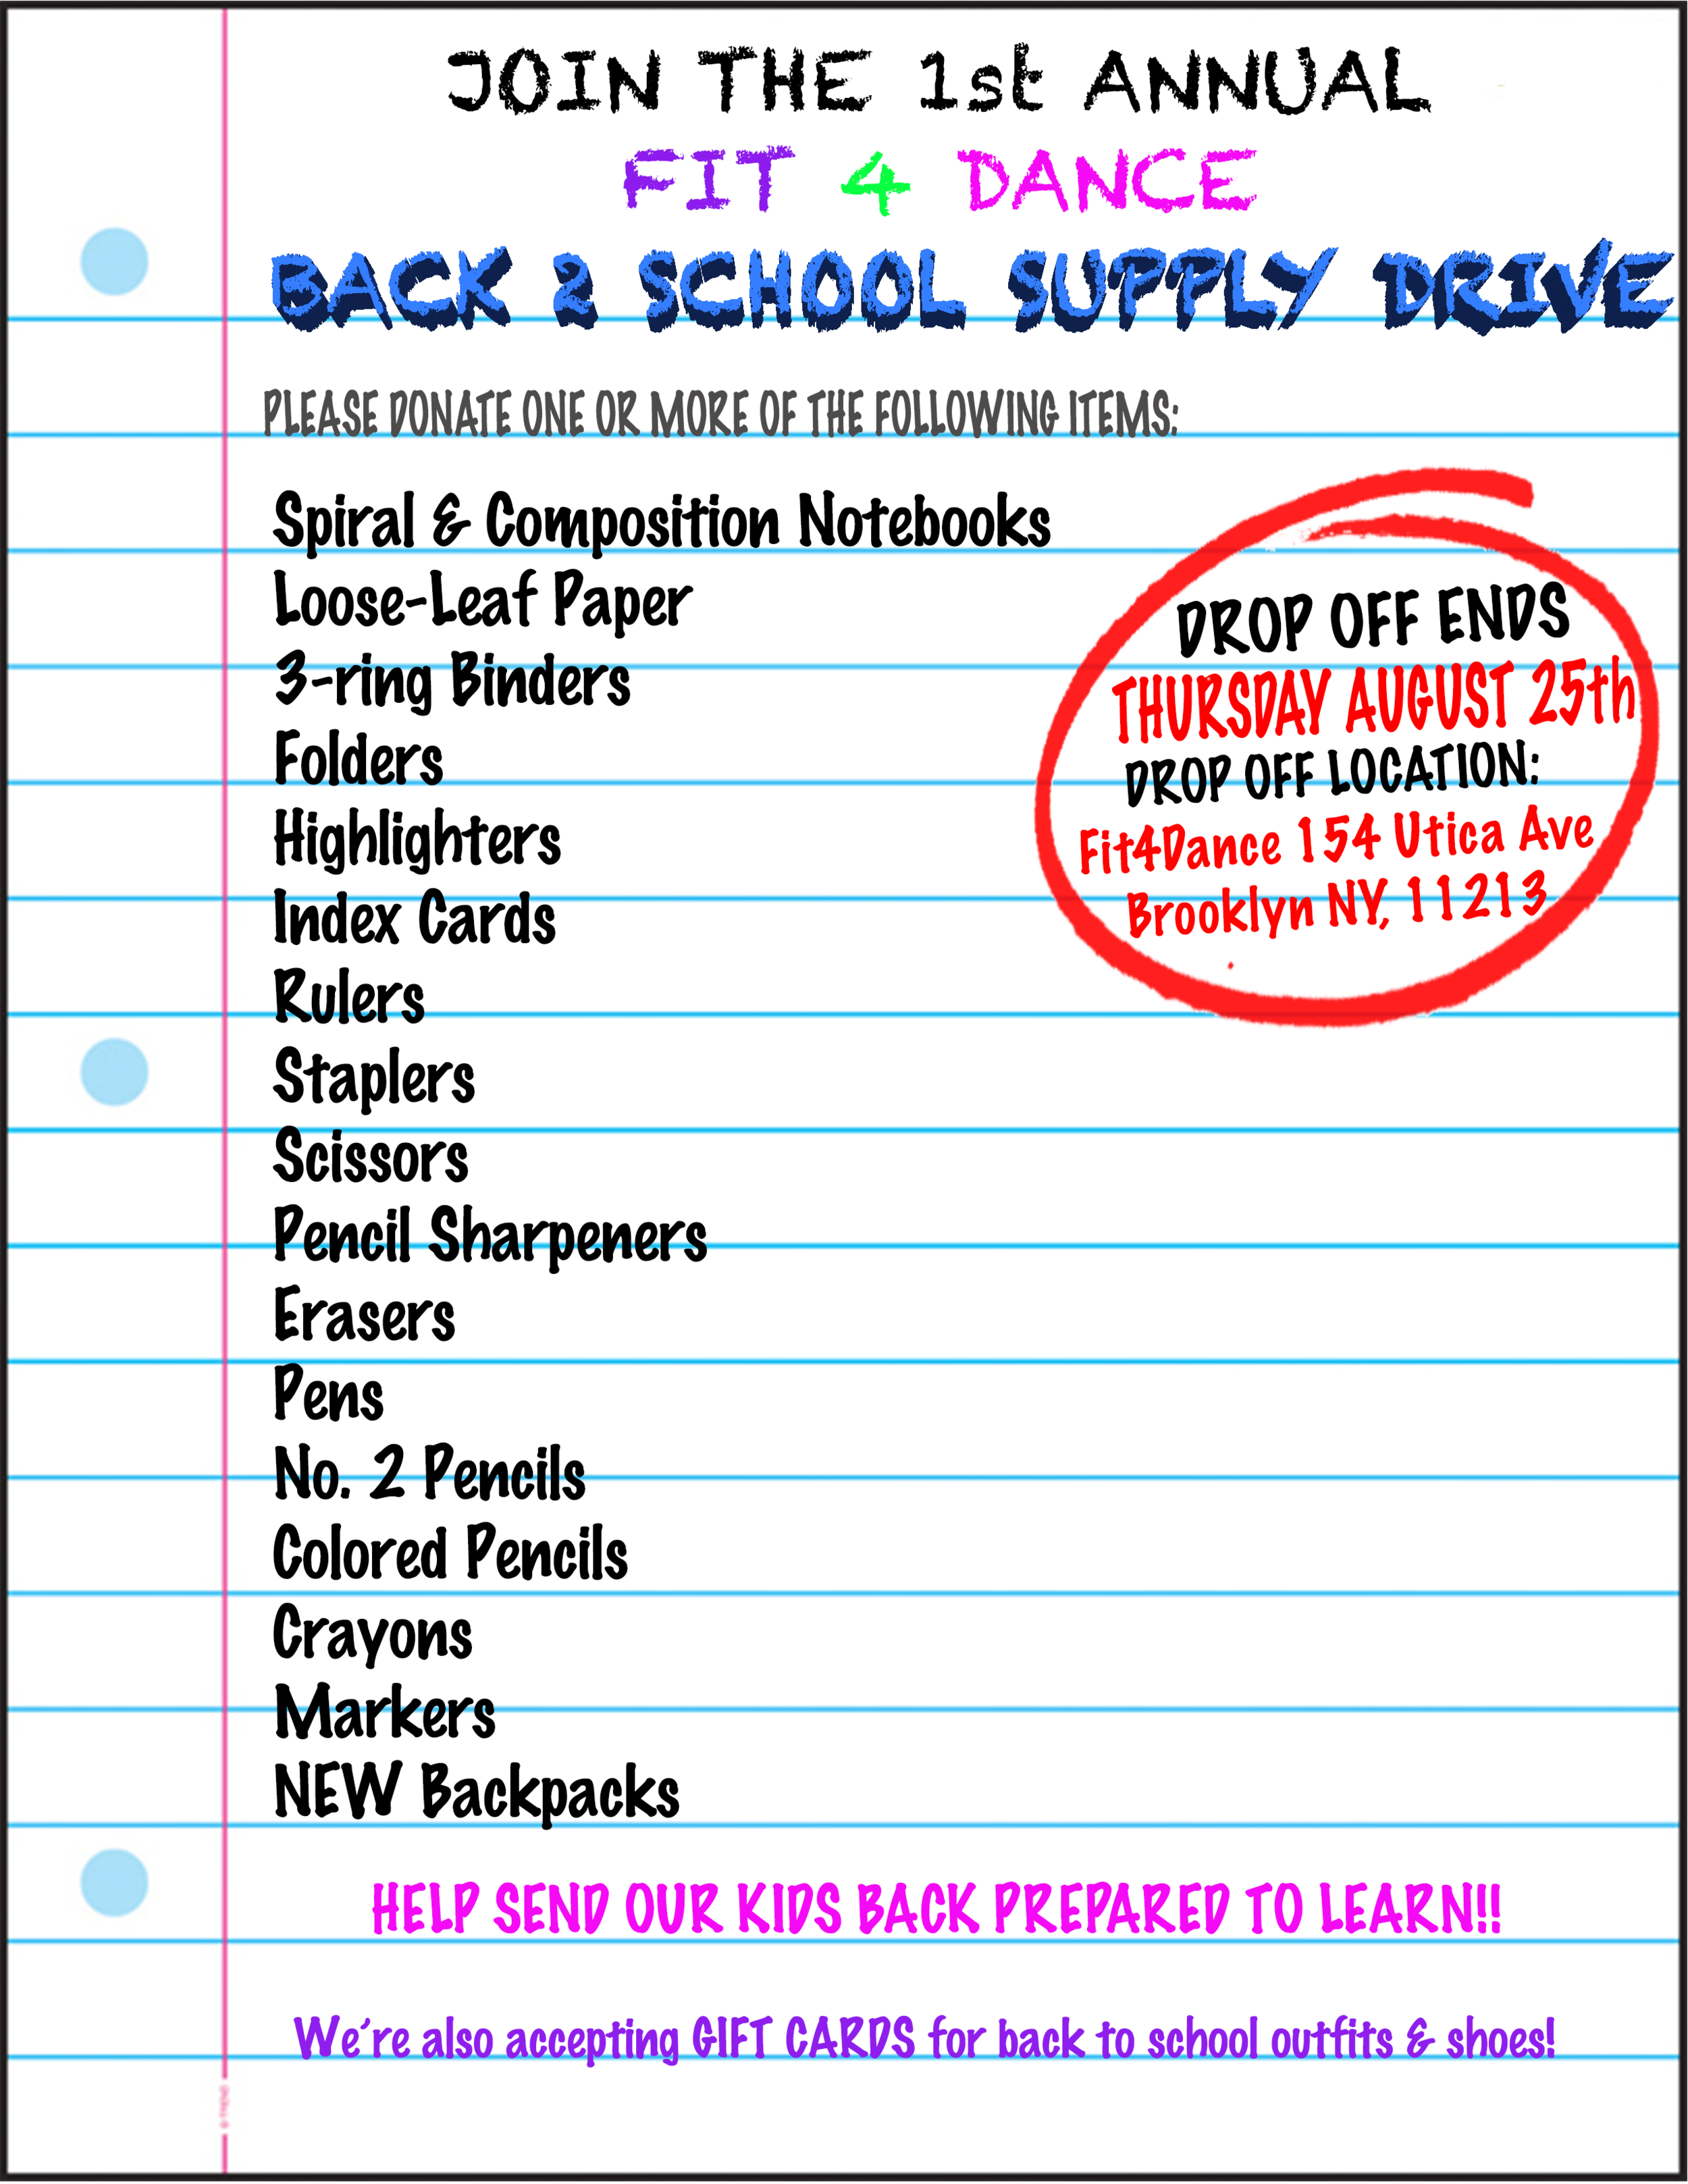 Fit4Dance & Breaktapes Hosts a Back to School Supply Drive